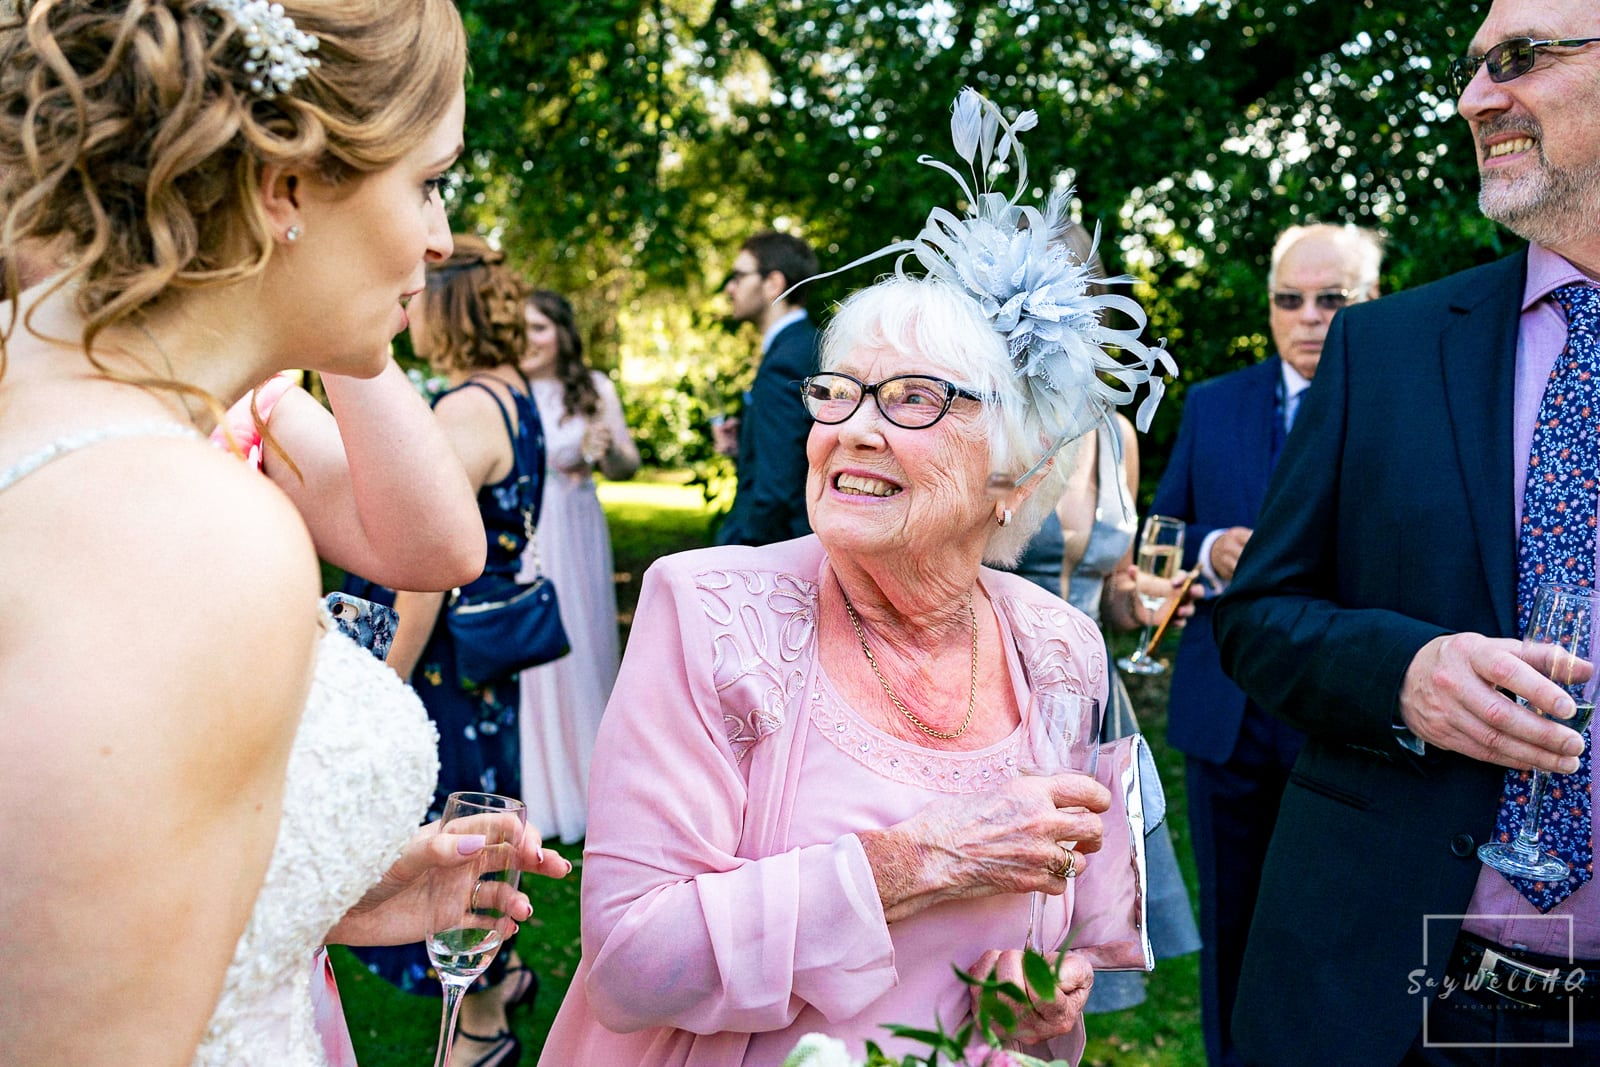 Prestwold Hall Wedding Photography - wedding guests enjoying the summer sunshine in the grounds of Prestwold Hall